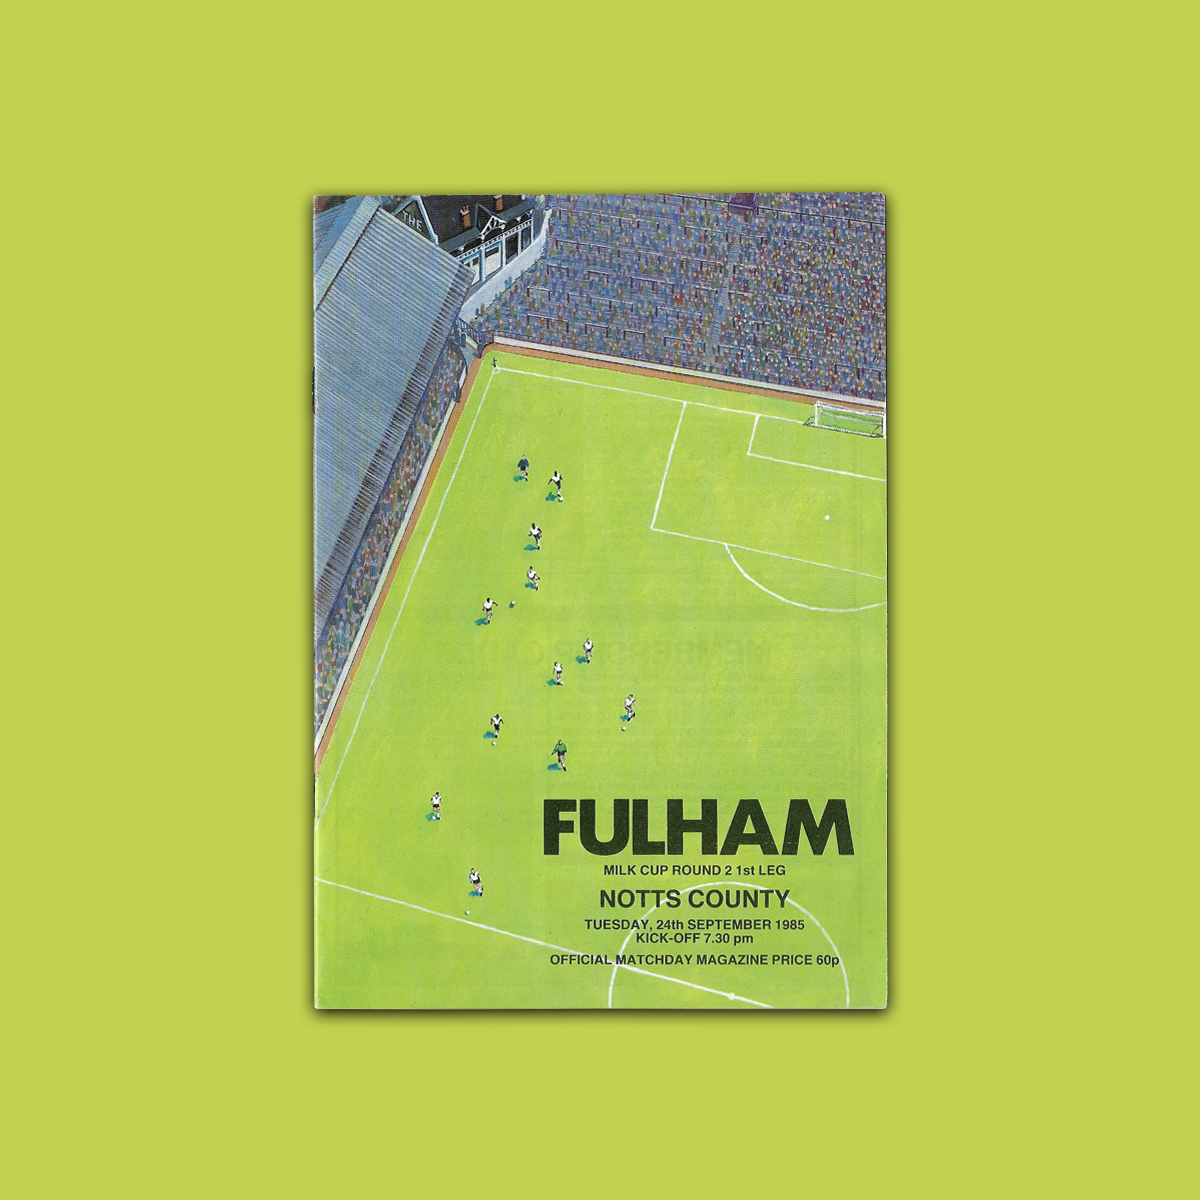 09_23_1984_Fulham_NottsCounty_Front